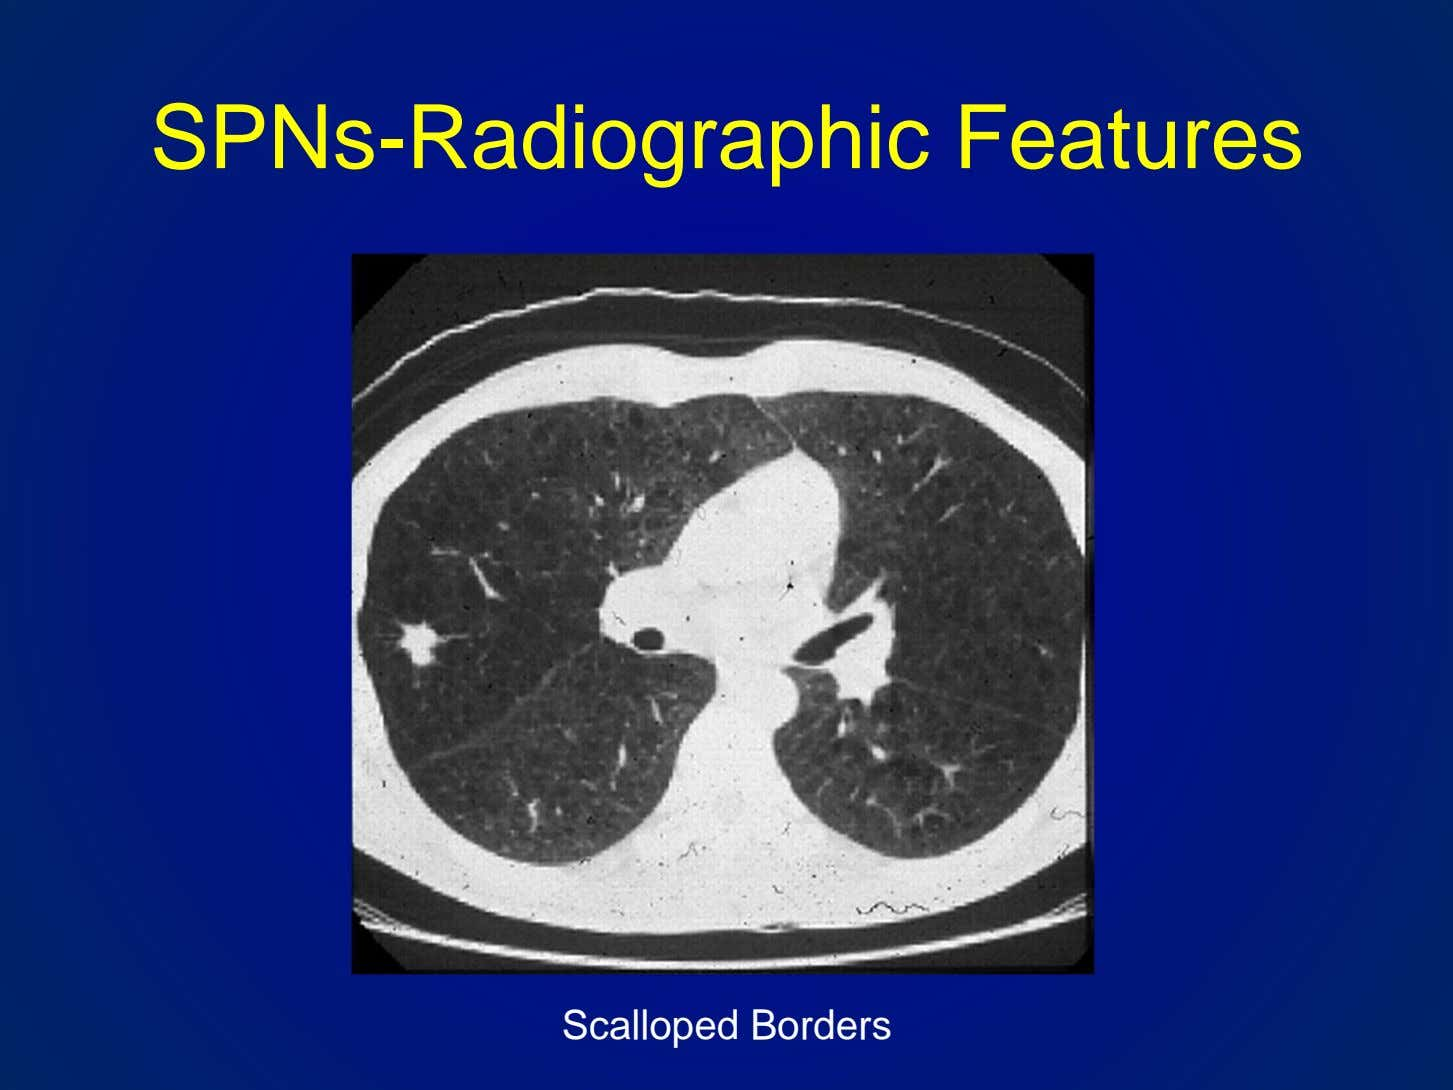 SPNs-Radiographic Features Scalloped Borders